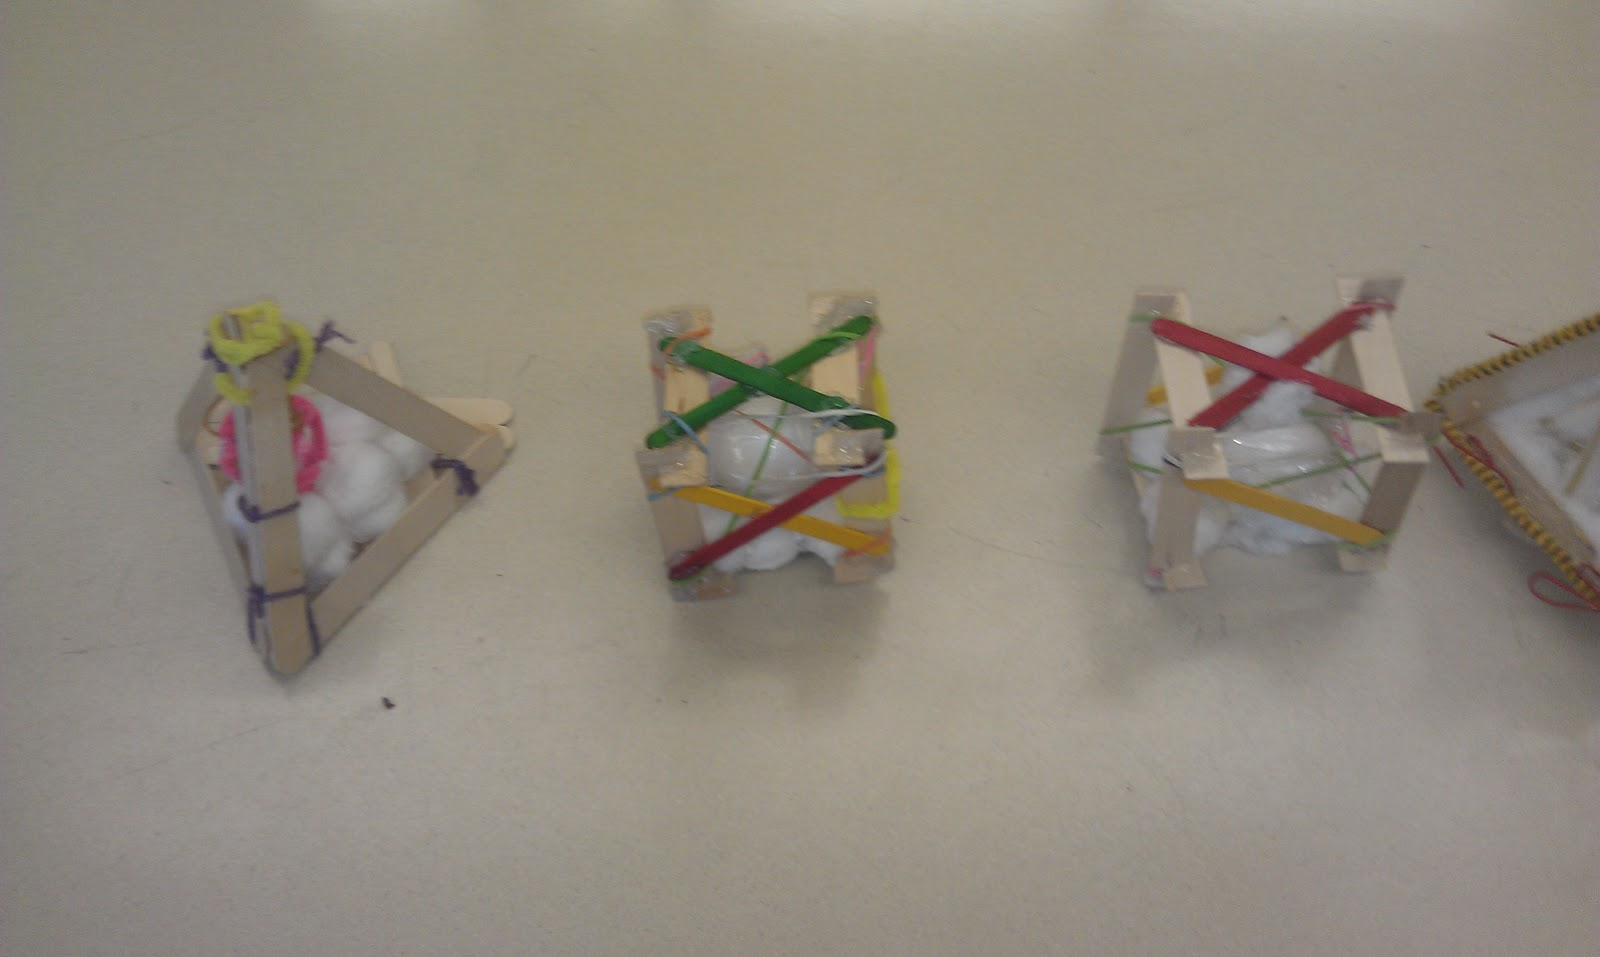 egg drop project designs with straws